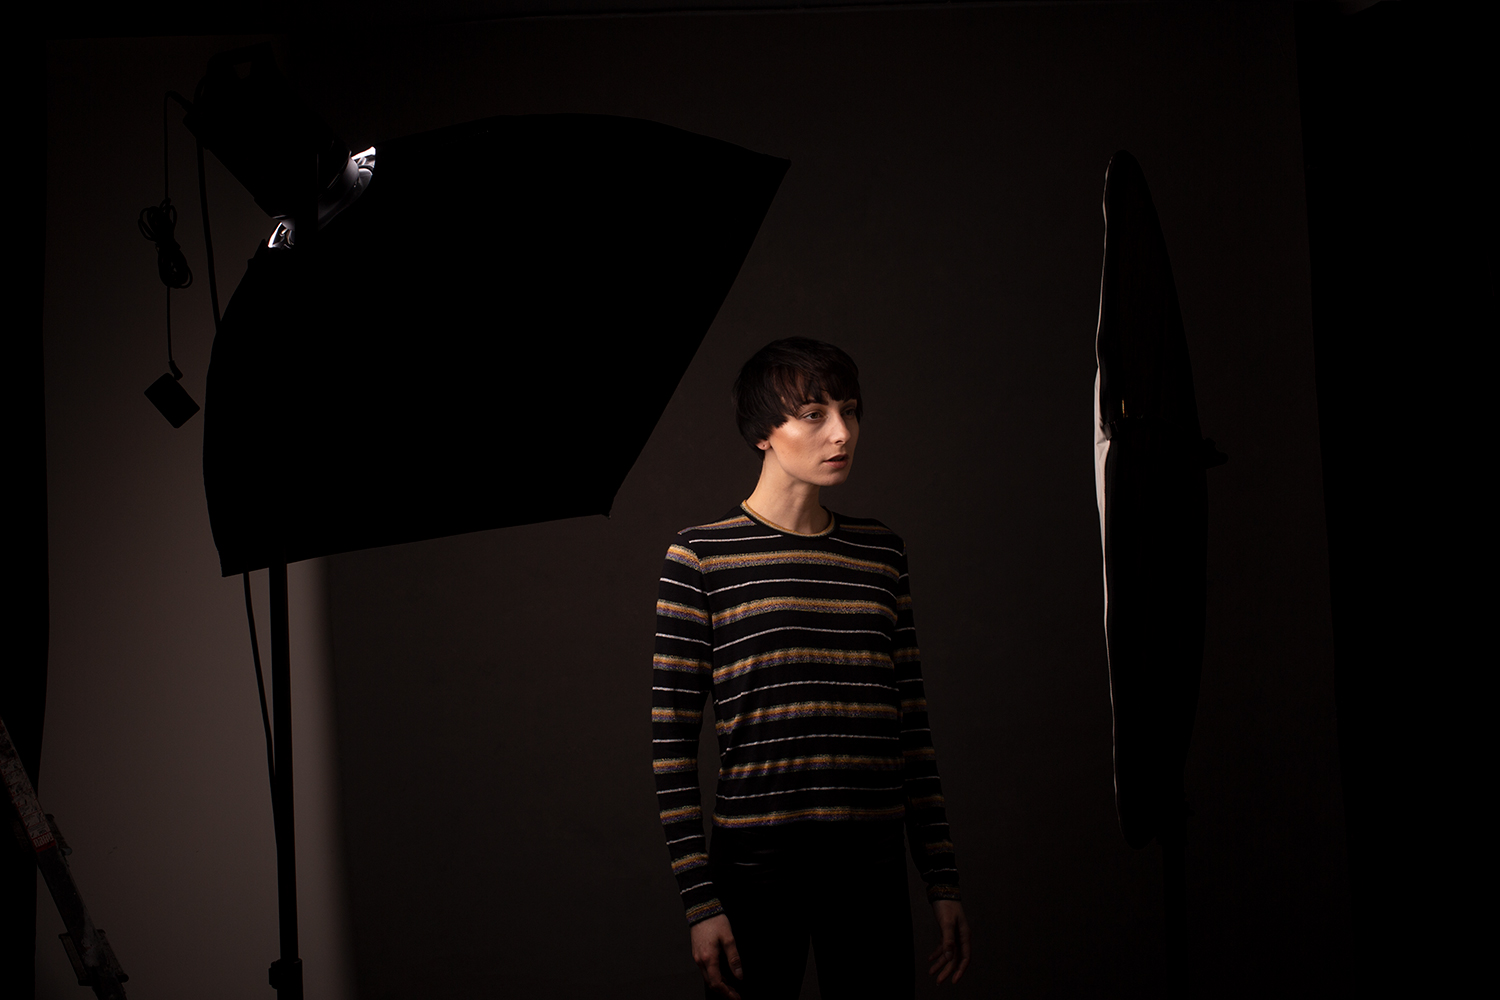 Image: Adding fill to your broad lighting can help with extreme contrast while still retaining shado...